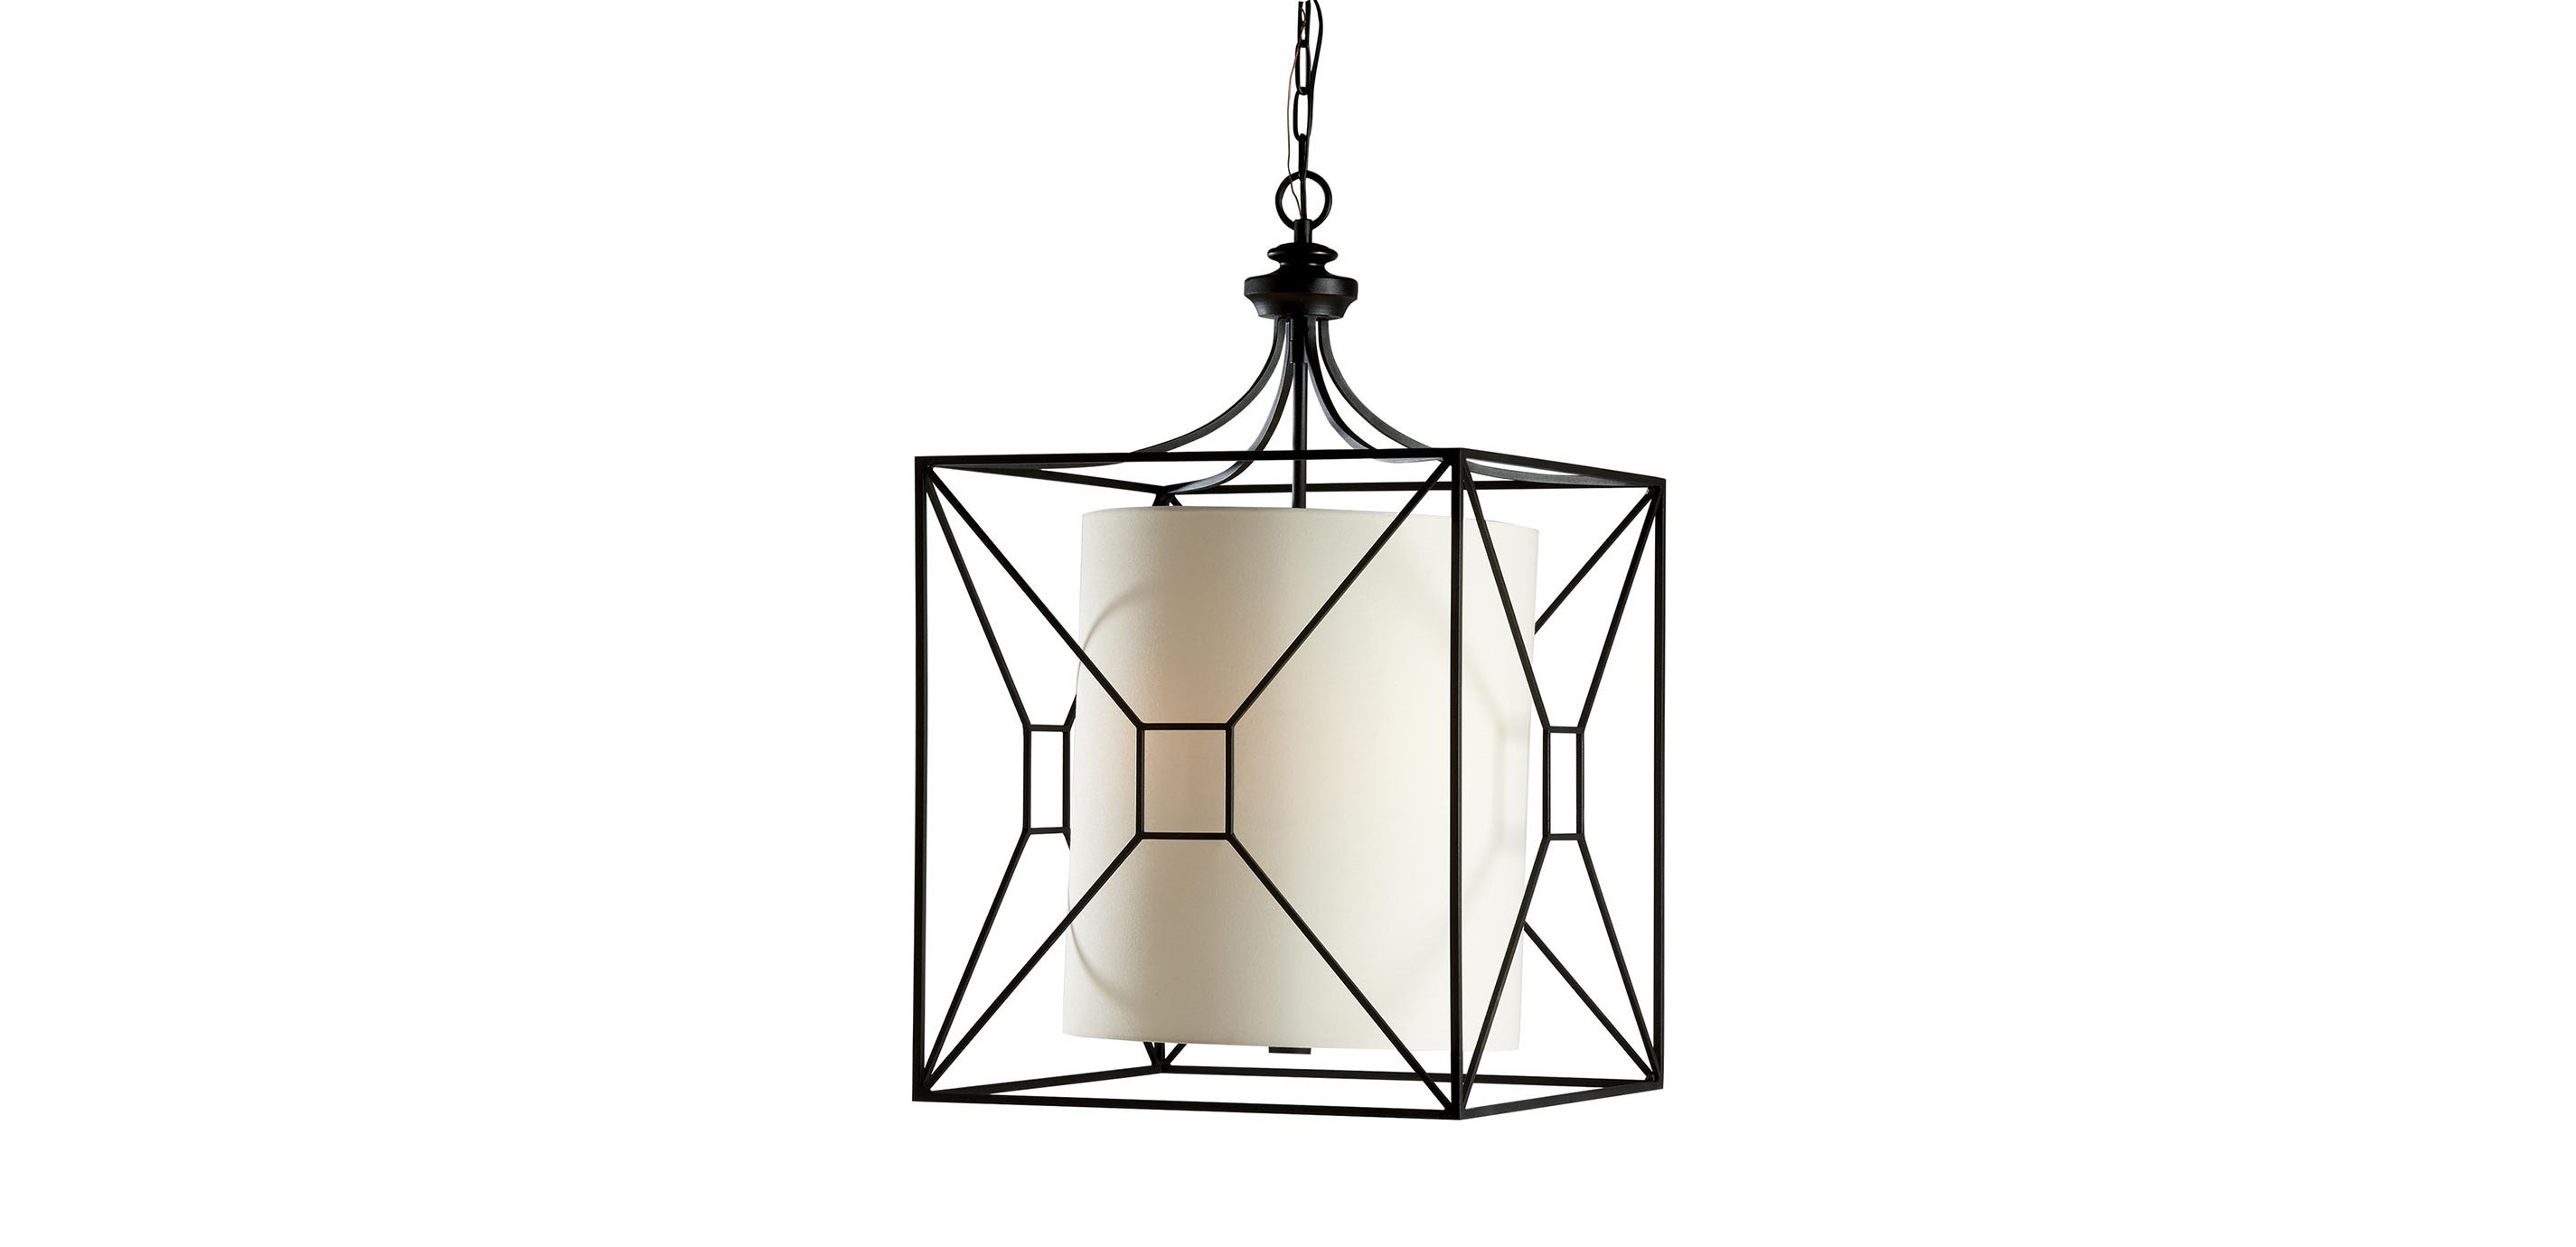 antique catalogue designer chand chandeliers funky with industrial grow pendant ceilingvintage lights interior pink style gold essential square remodel lighting dining full good room lantern of pleasant retro sale small uk led light diy about for hanging most black chandelier copper size edison